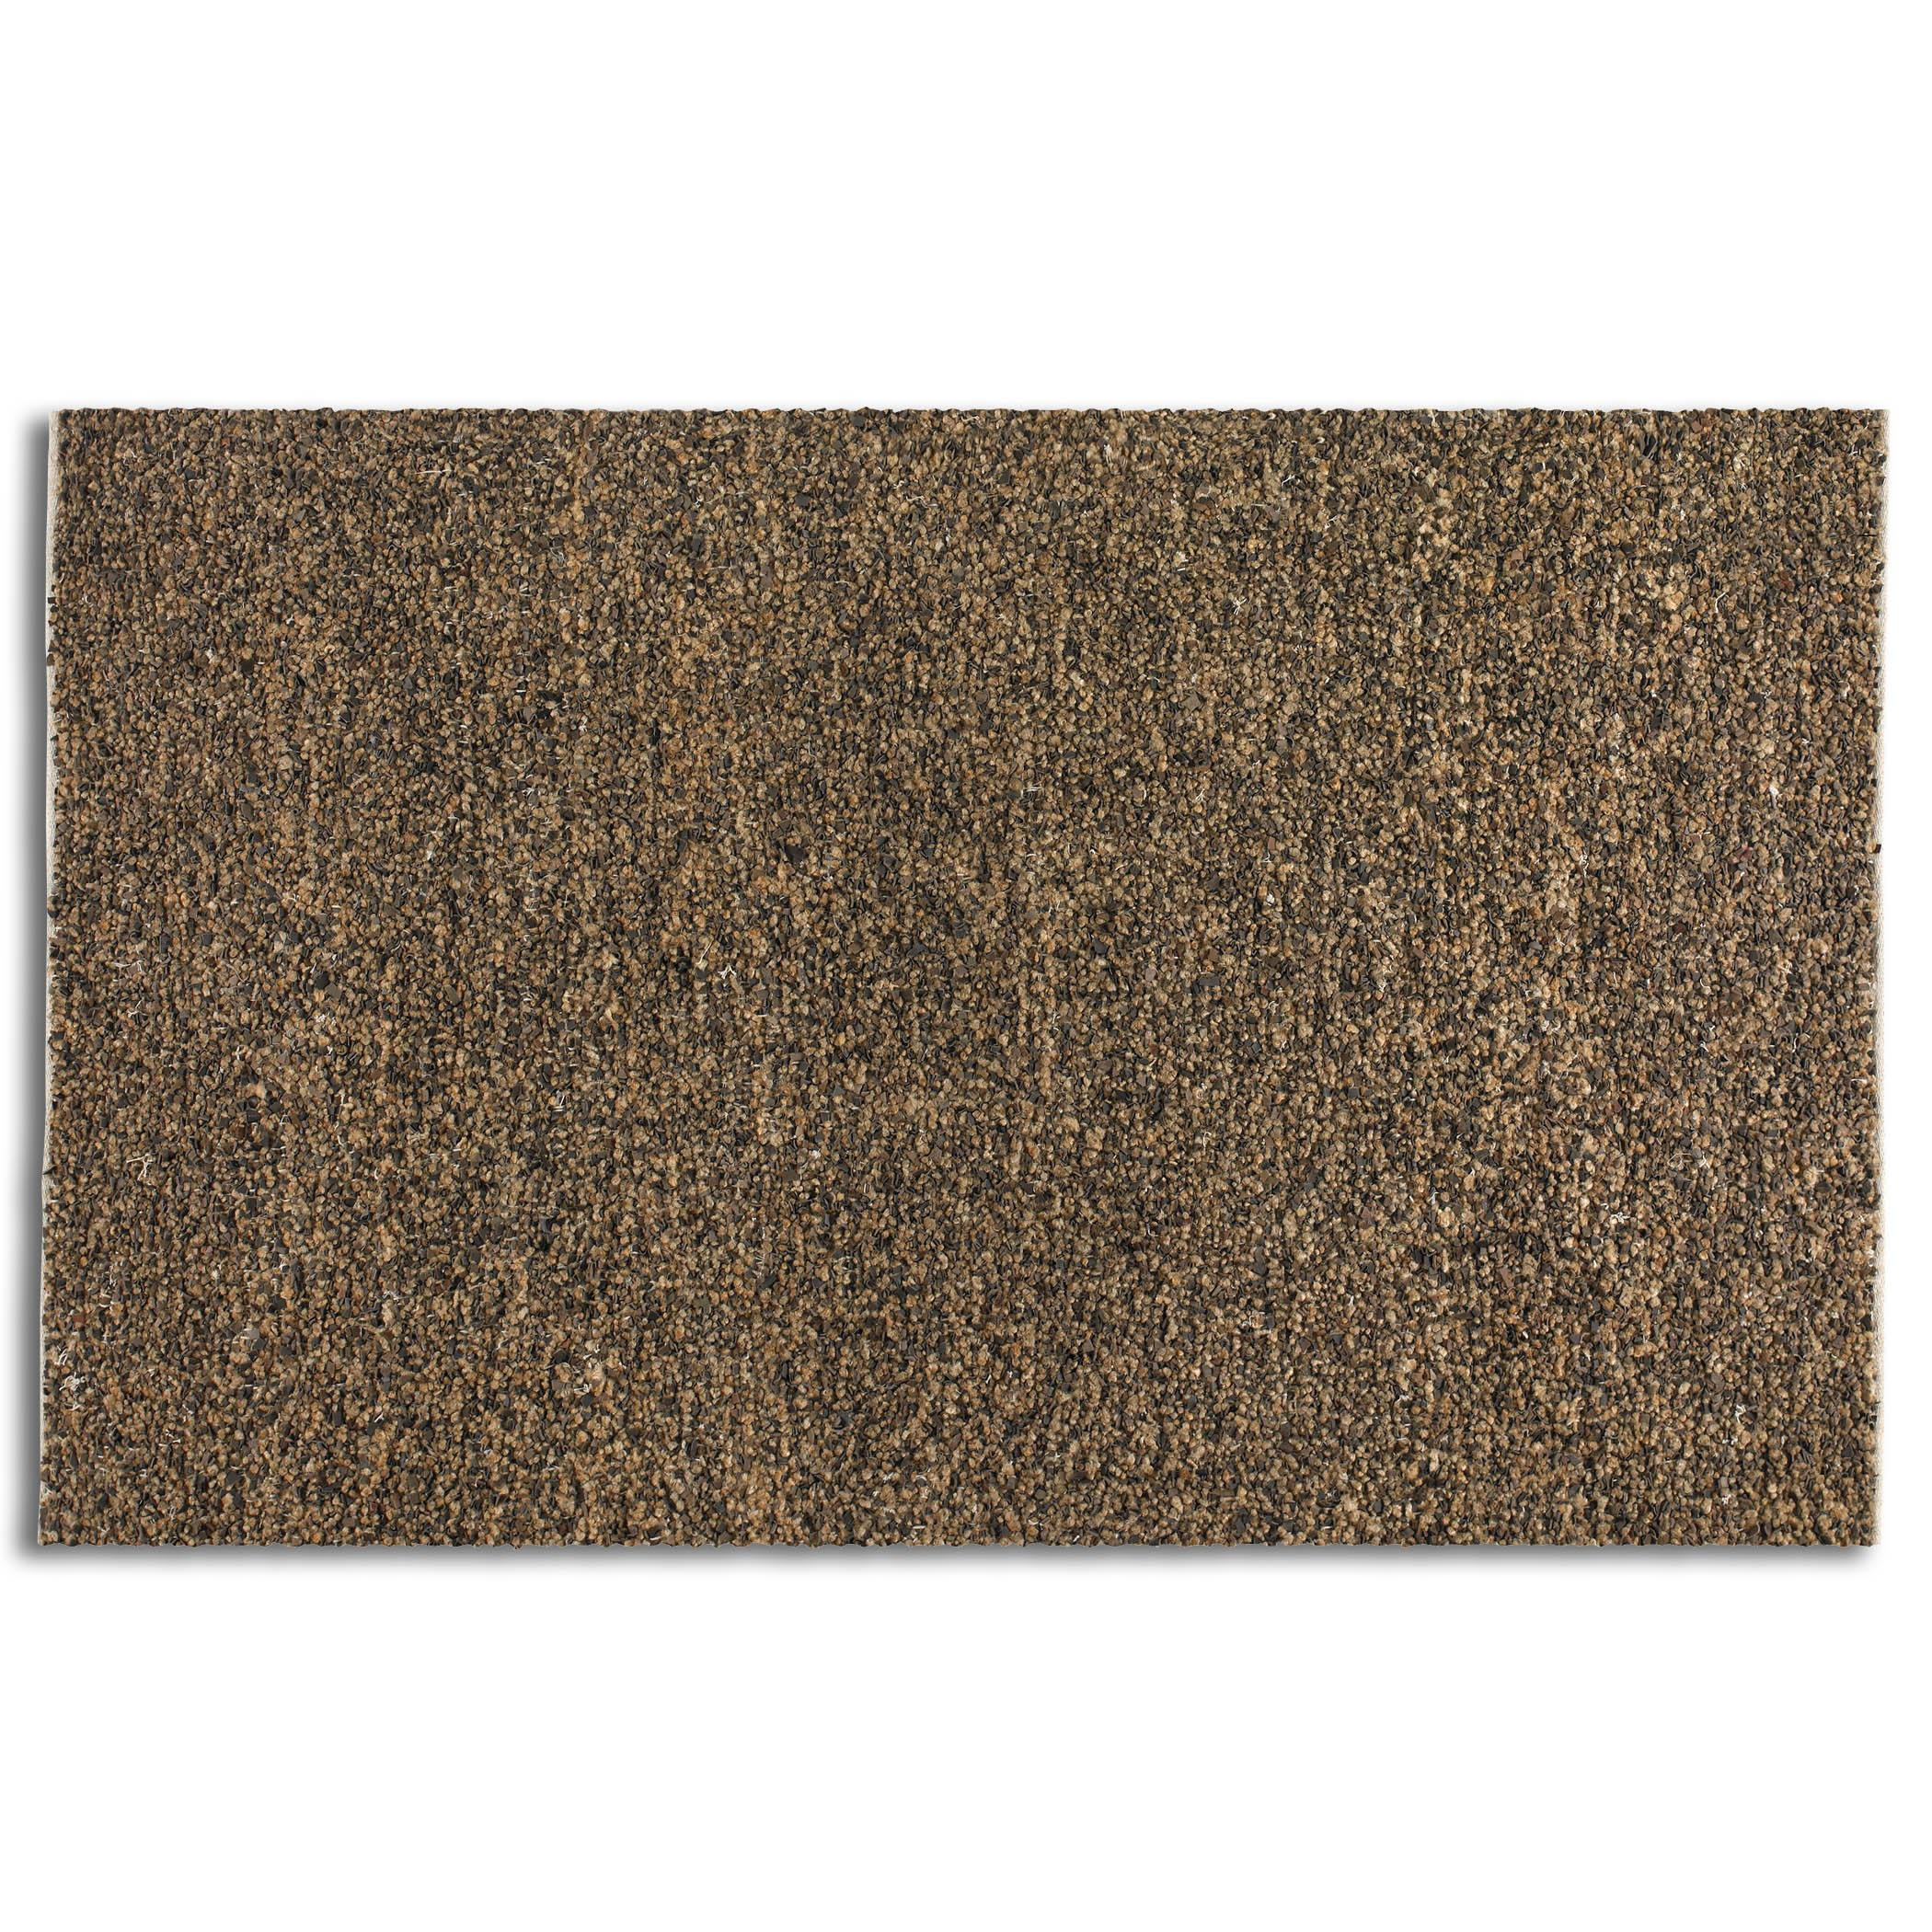 Uttermost Rugs Tufara 5 X 8 Rug - Brown - Item Number: 71046-5